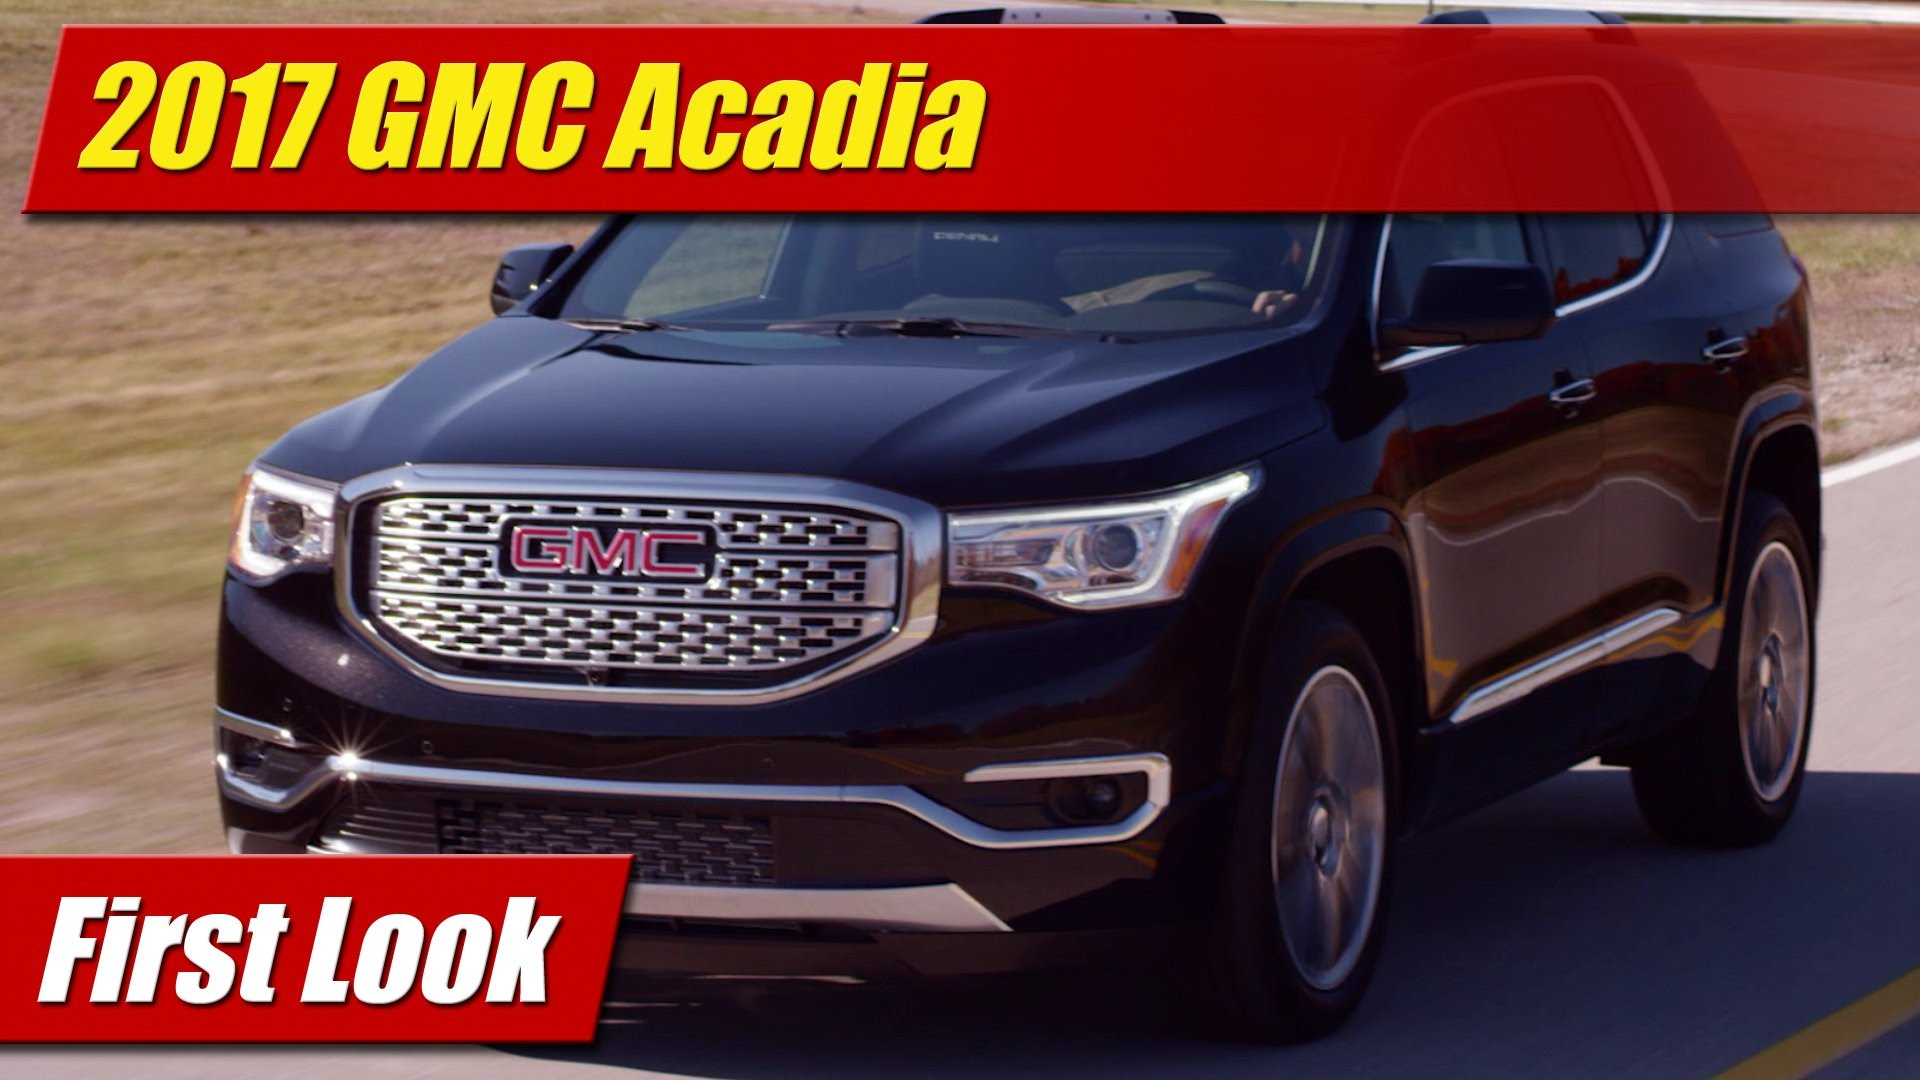 Awesome First Look 2017 GMC Acadia  TestDrivenTV